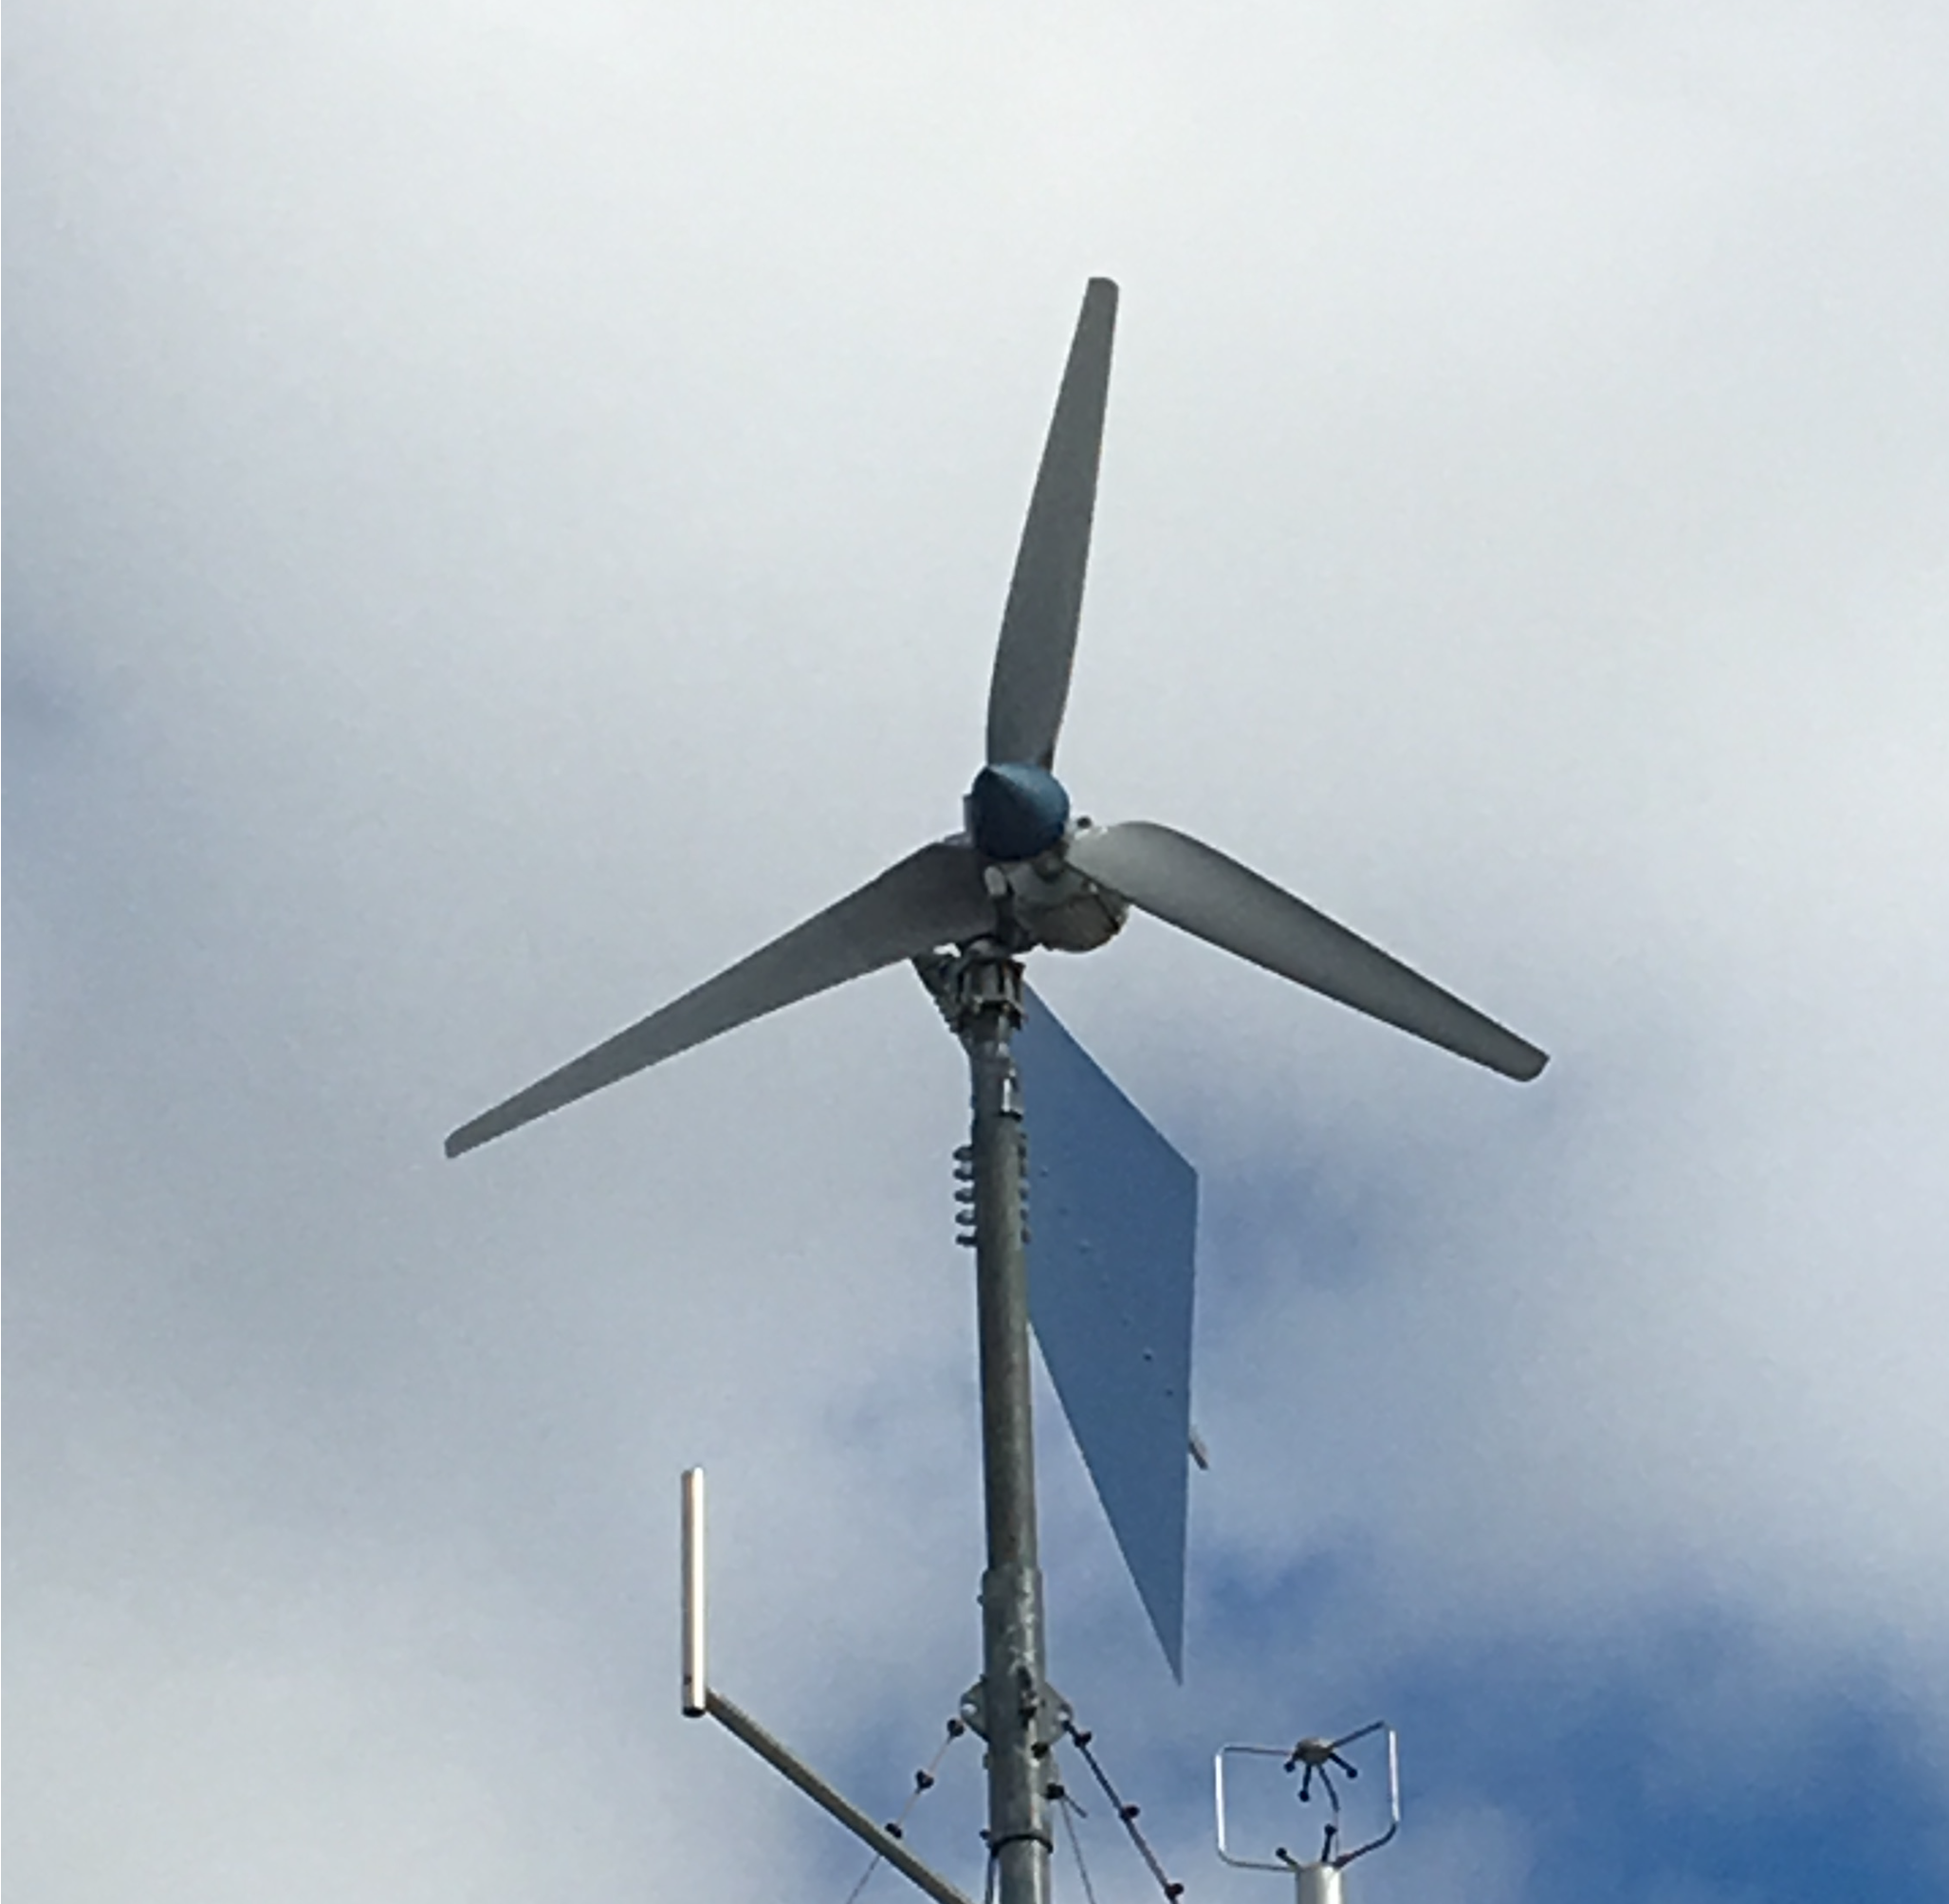 The Anorra Turbine is an excellent size for dwellings and cottages